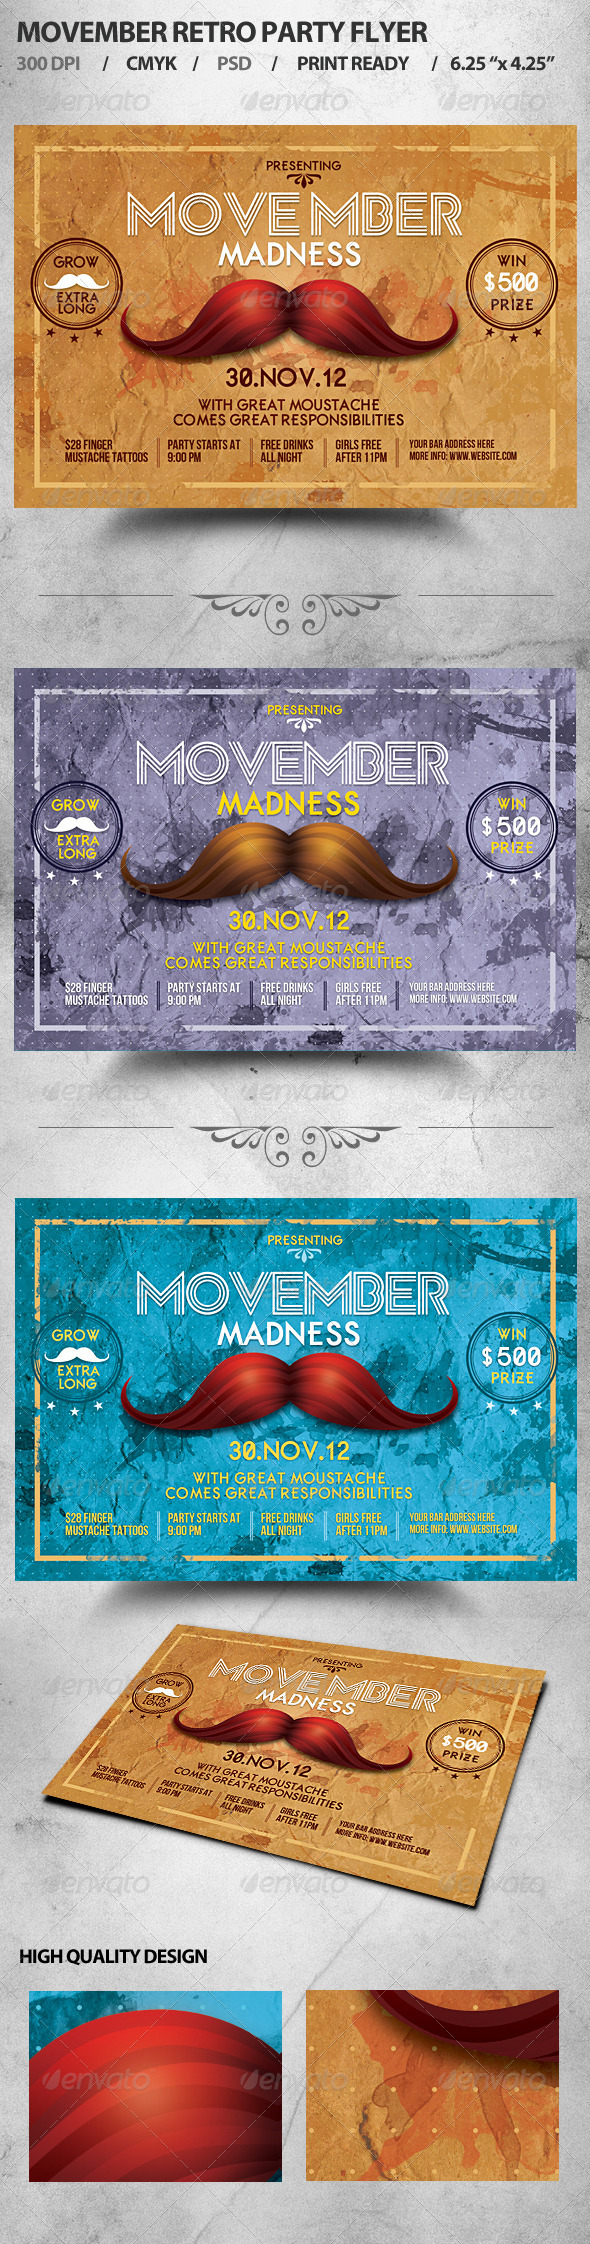 Retro Movember Party Flyer - Holidays Events